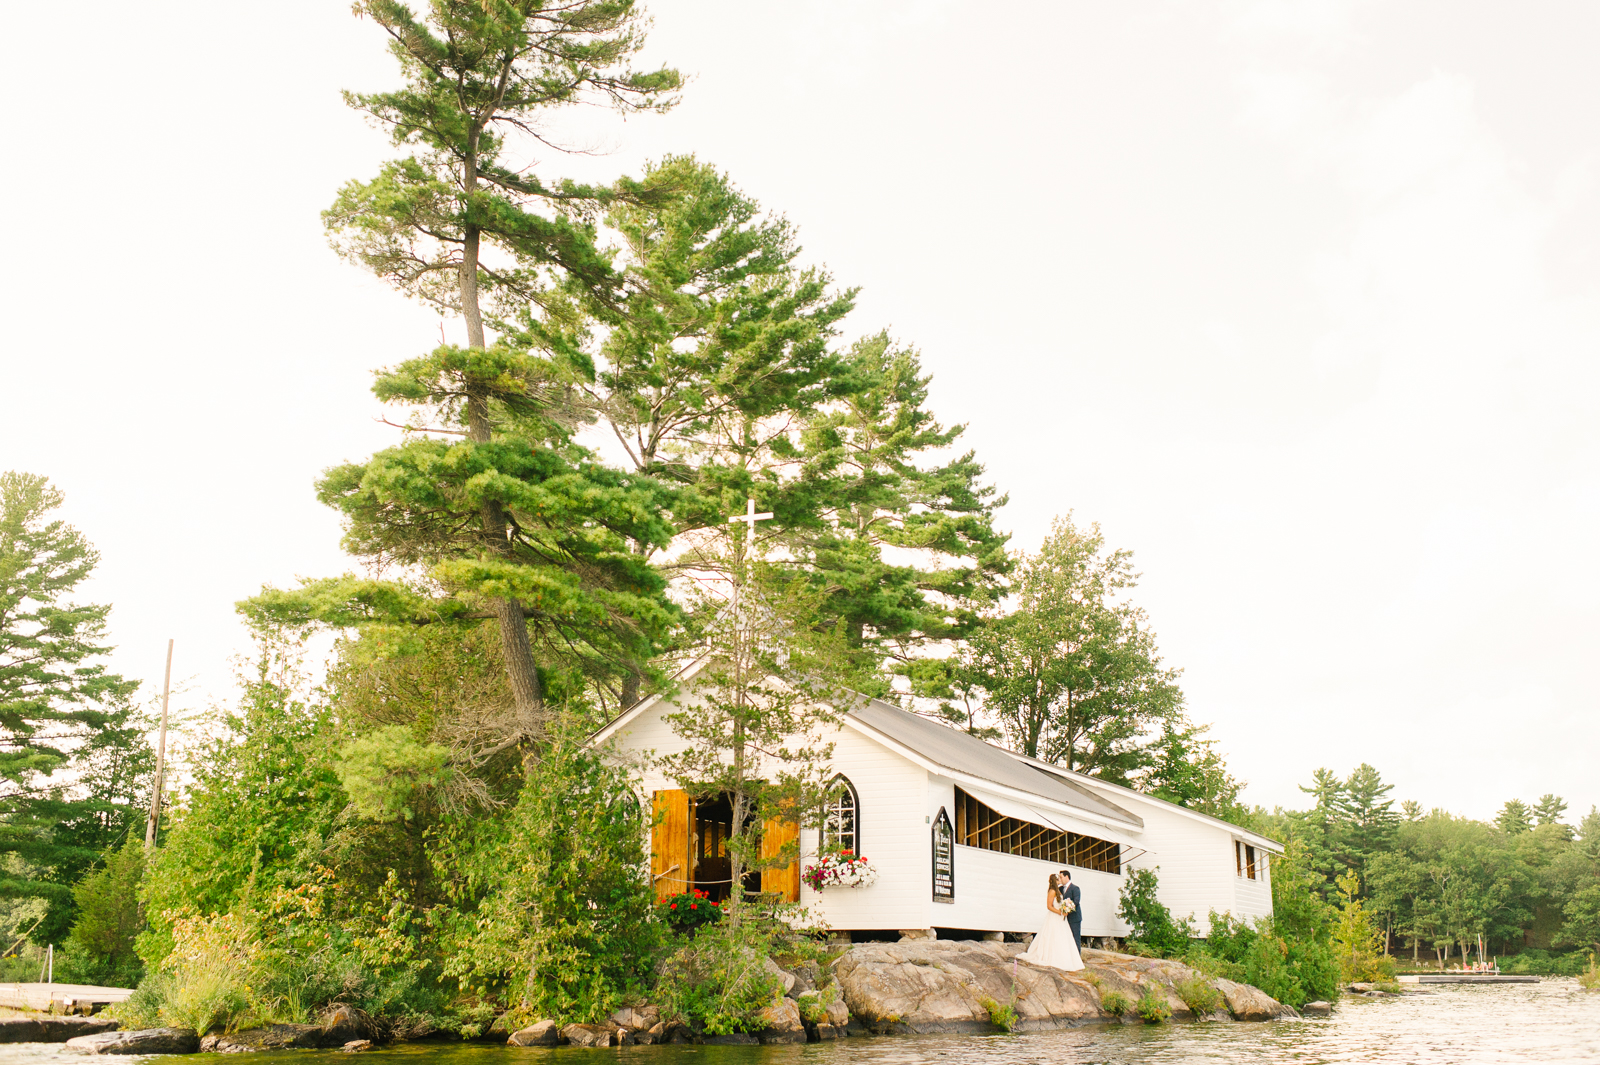 tara mcmullen photography muskoka wedding photographer st peters on the rock wedding photos muskoka wedding photos where to get married in muskoka camp ooch wedding-043